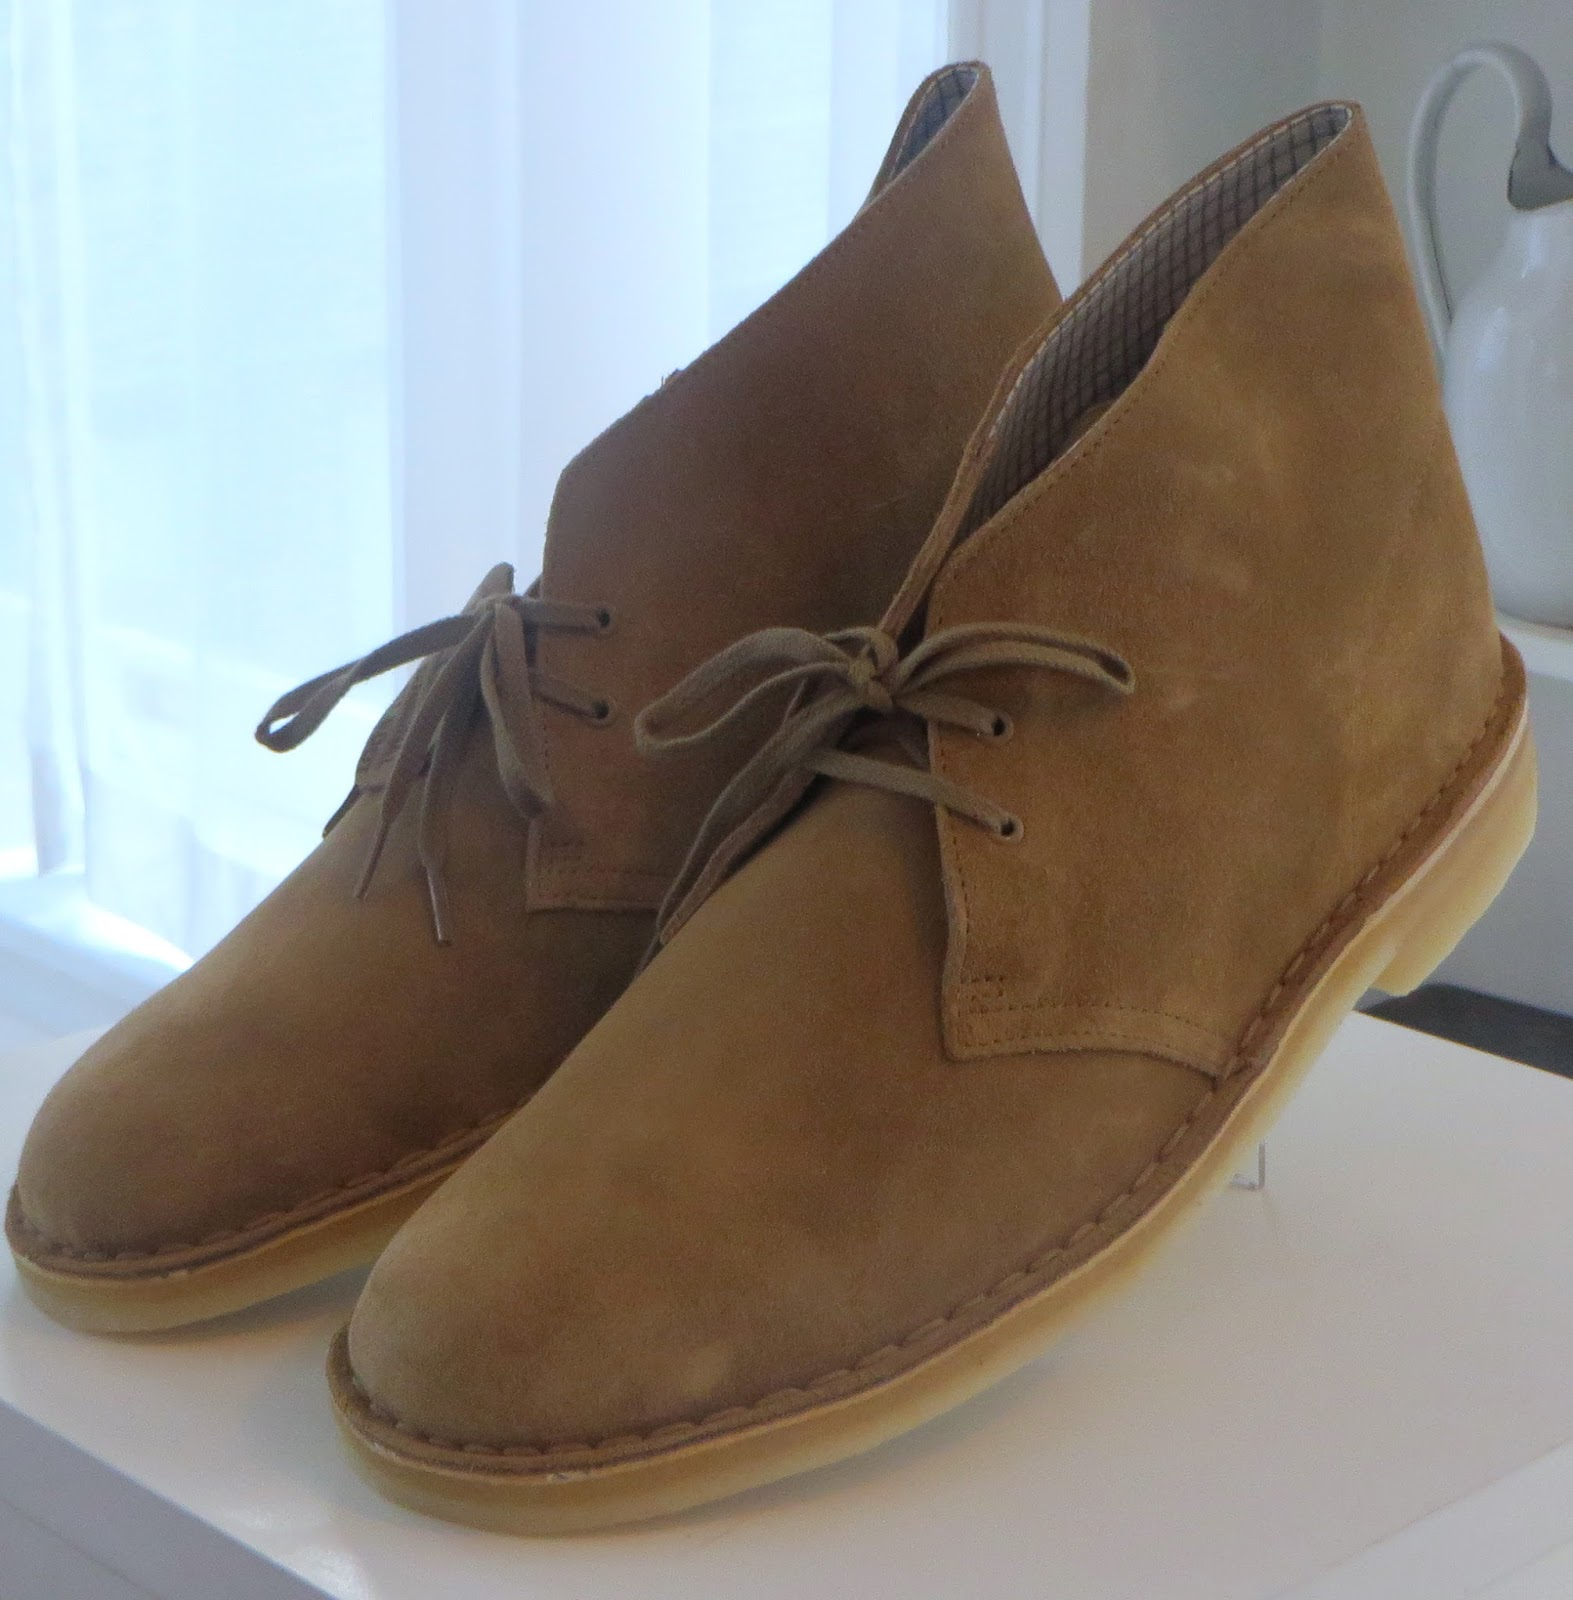 Cheap Ladies Clarks Shoes